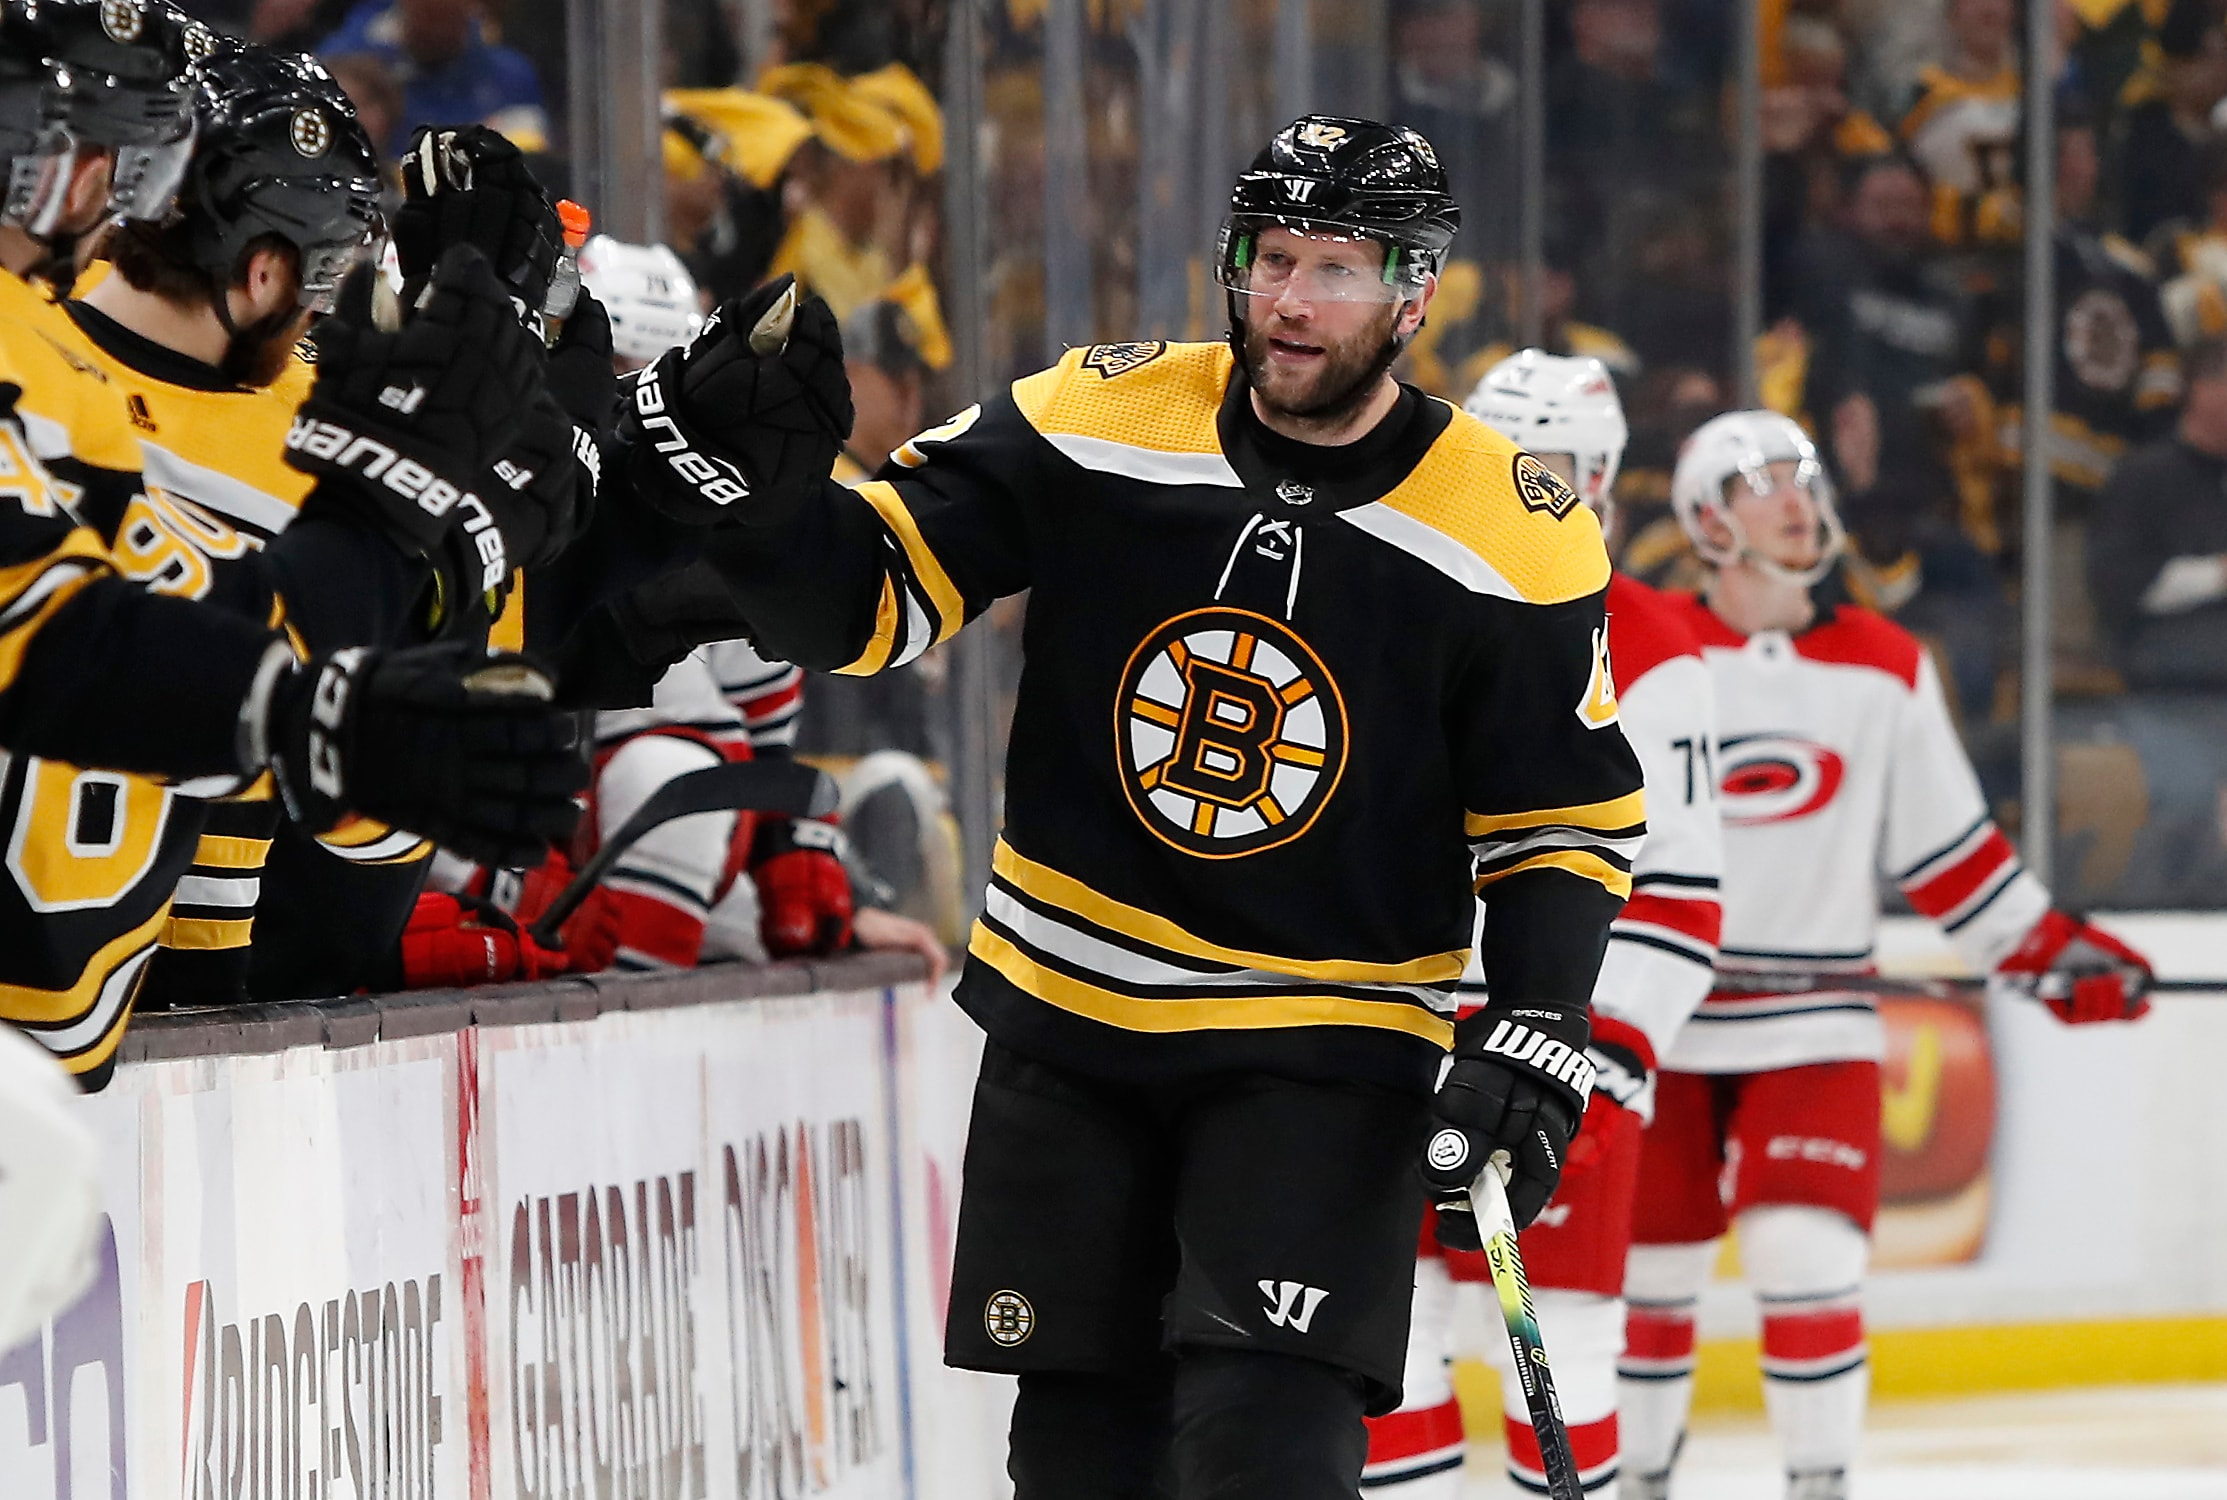 brand new 9fde7 686b8 Bruins have to find way to get out from under the David ...